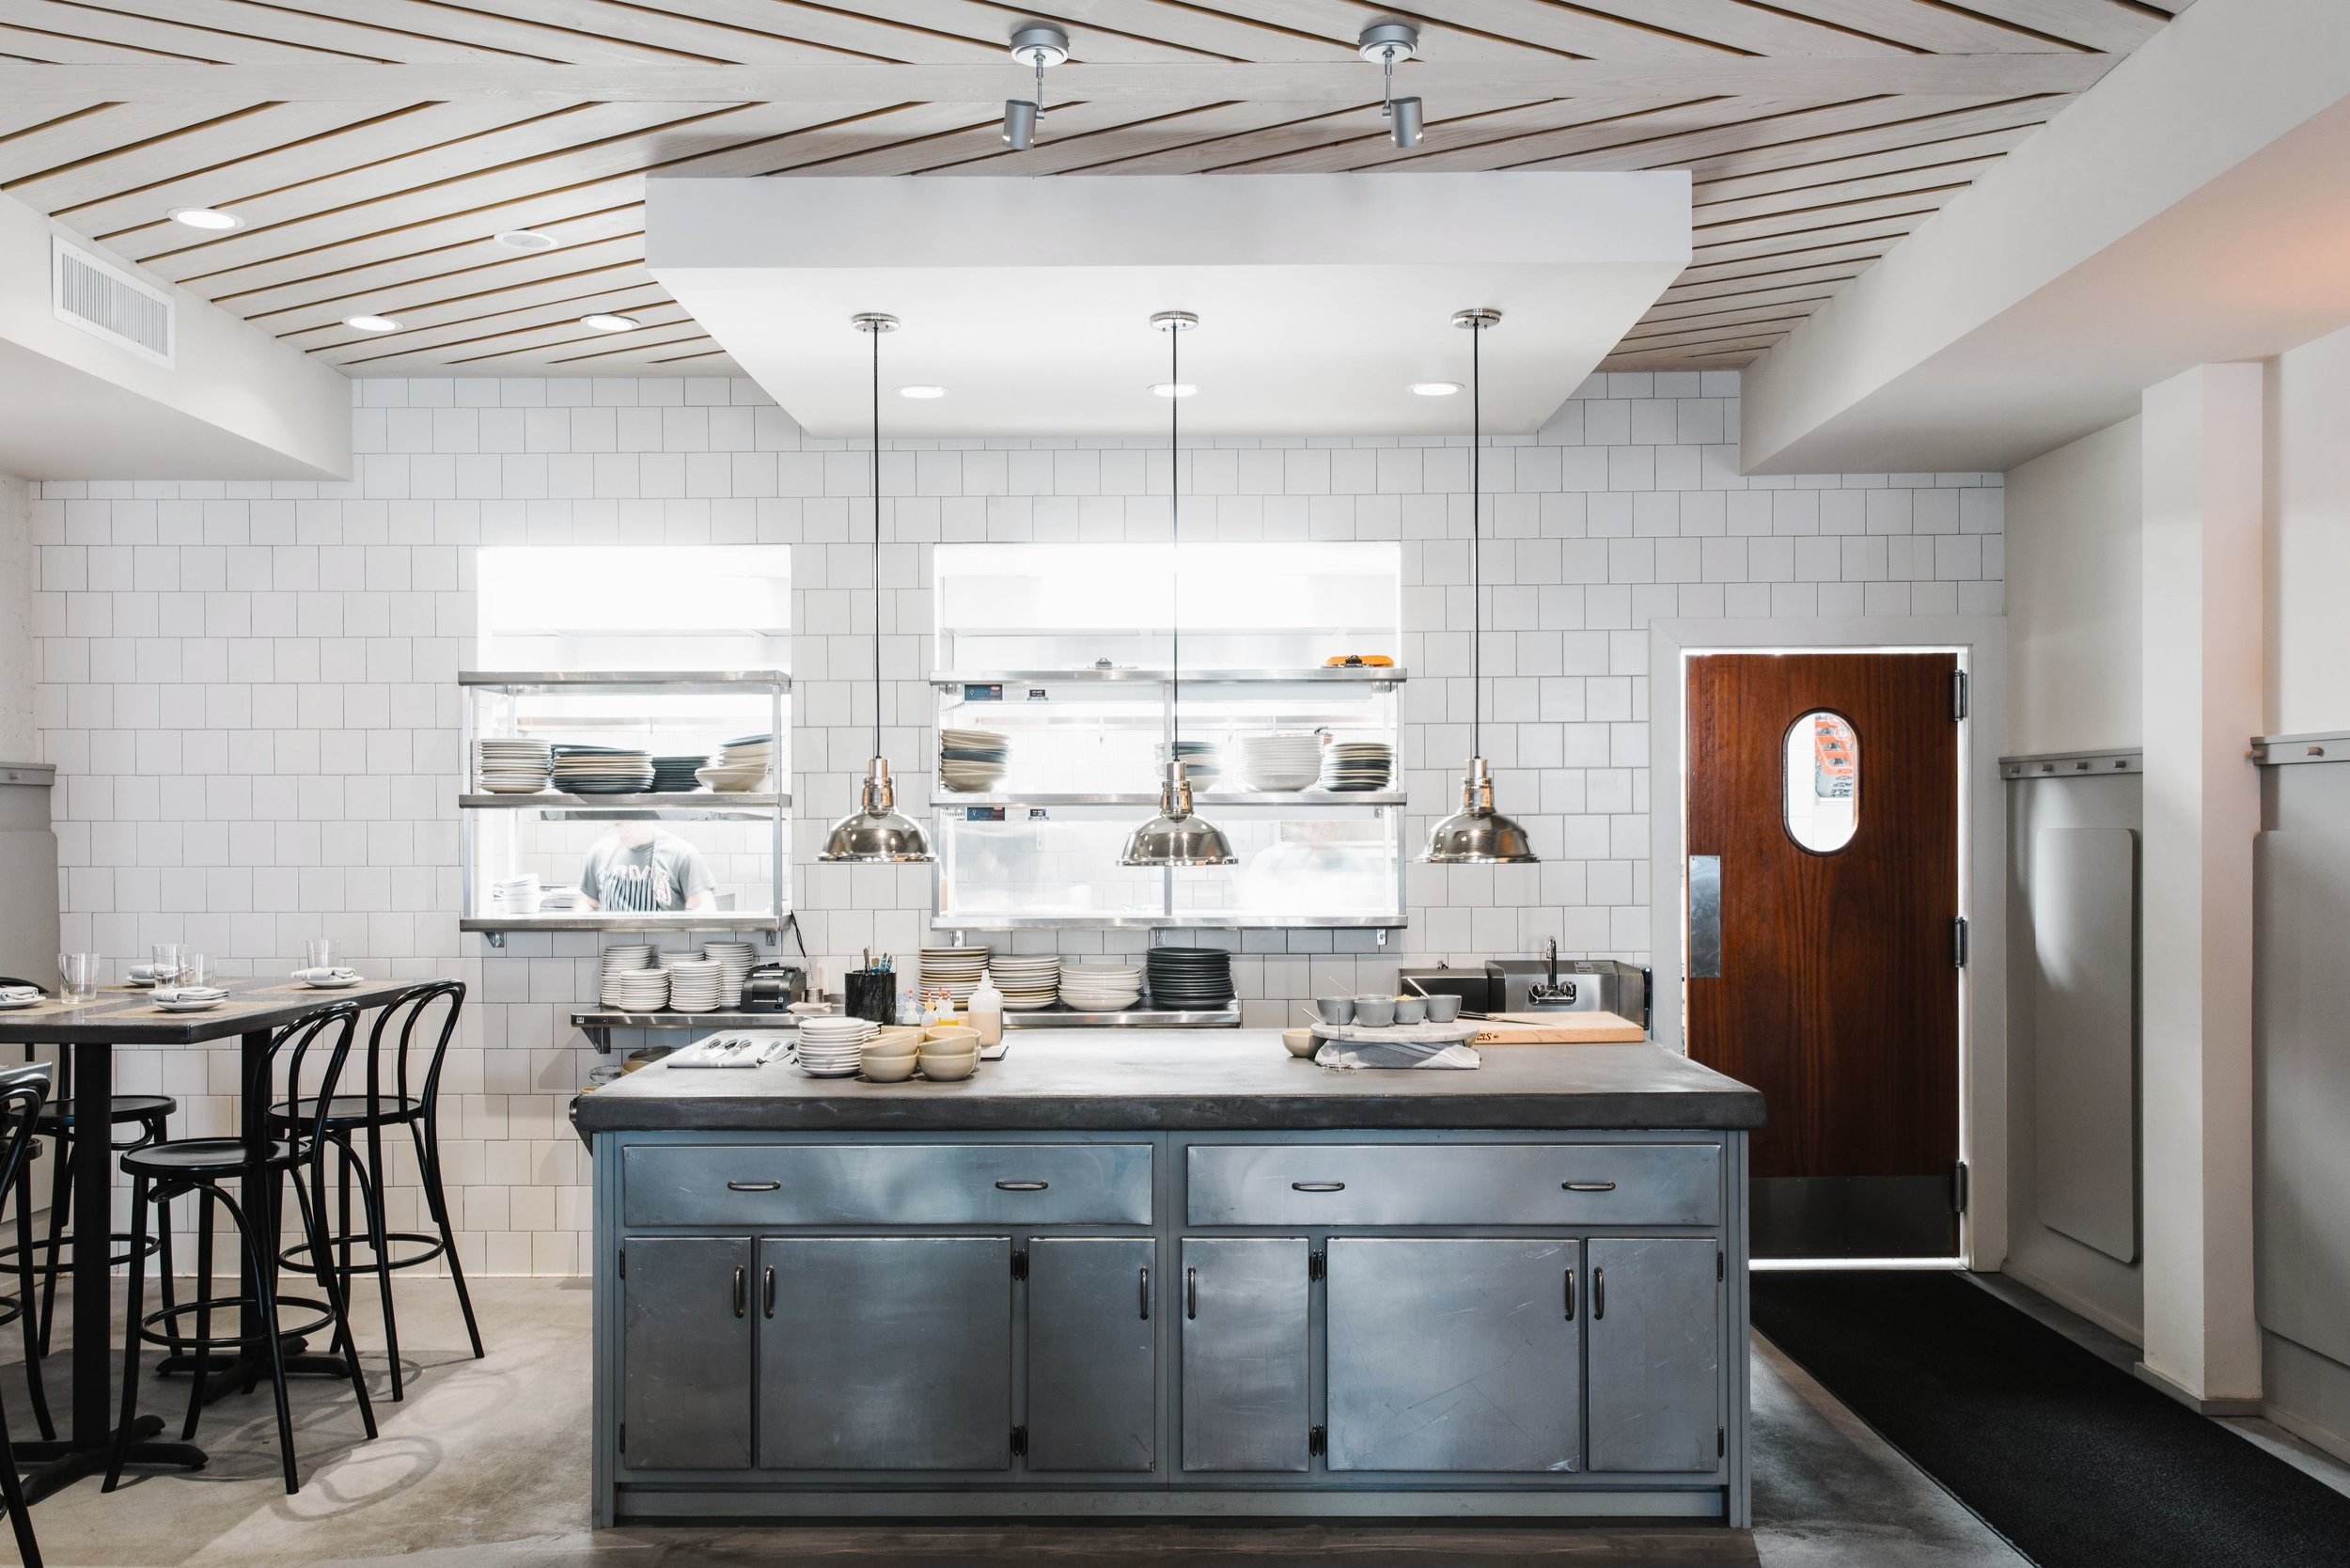 Southern National | Smith Hanes. Chef Station